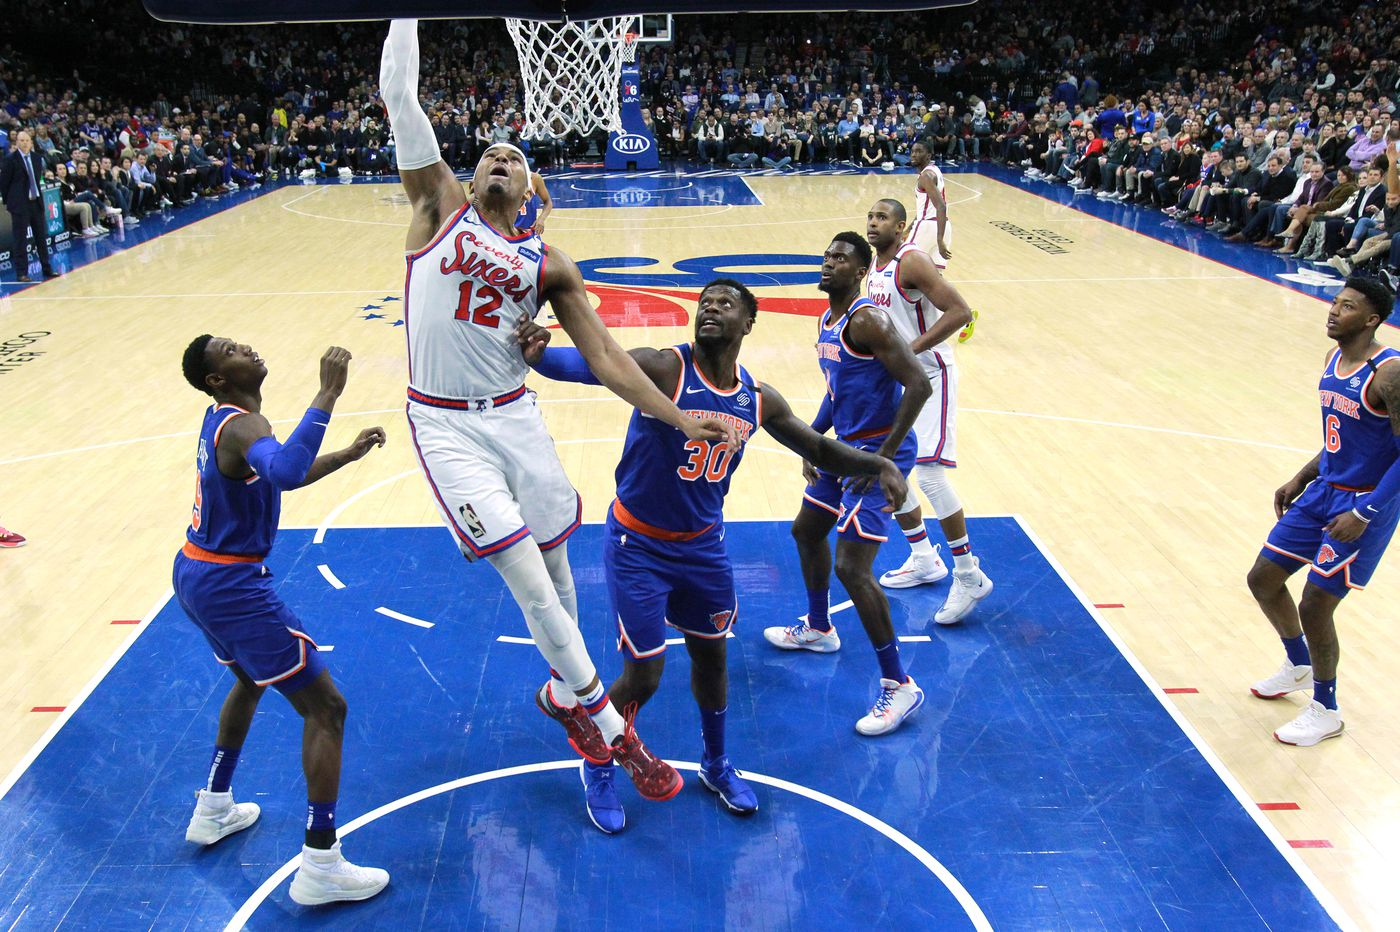 Sixers podcast: Is it really worth resuming the NBA season at this time?